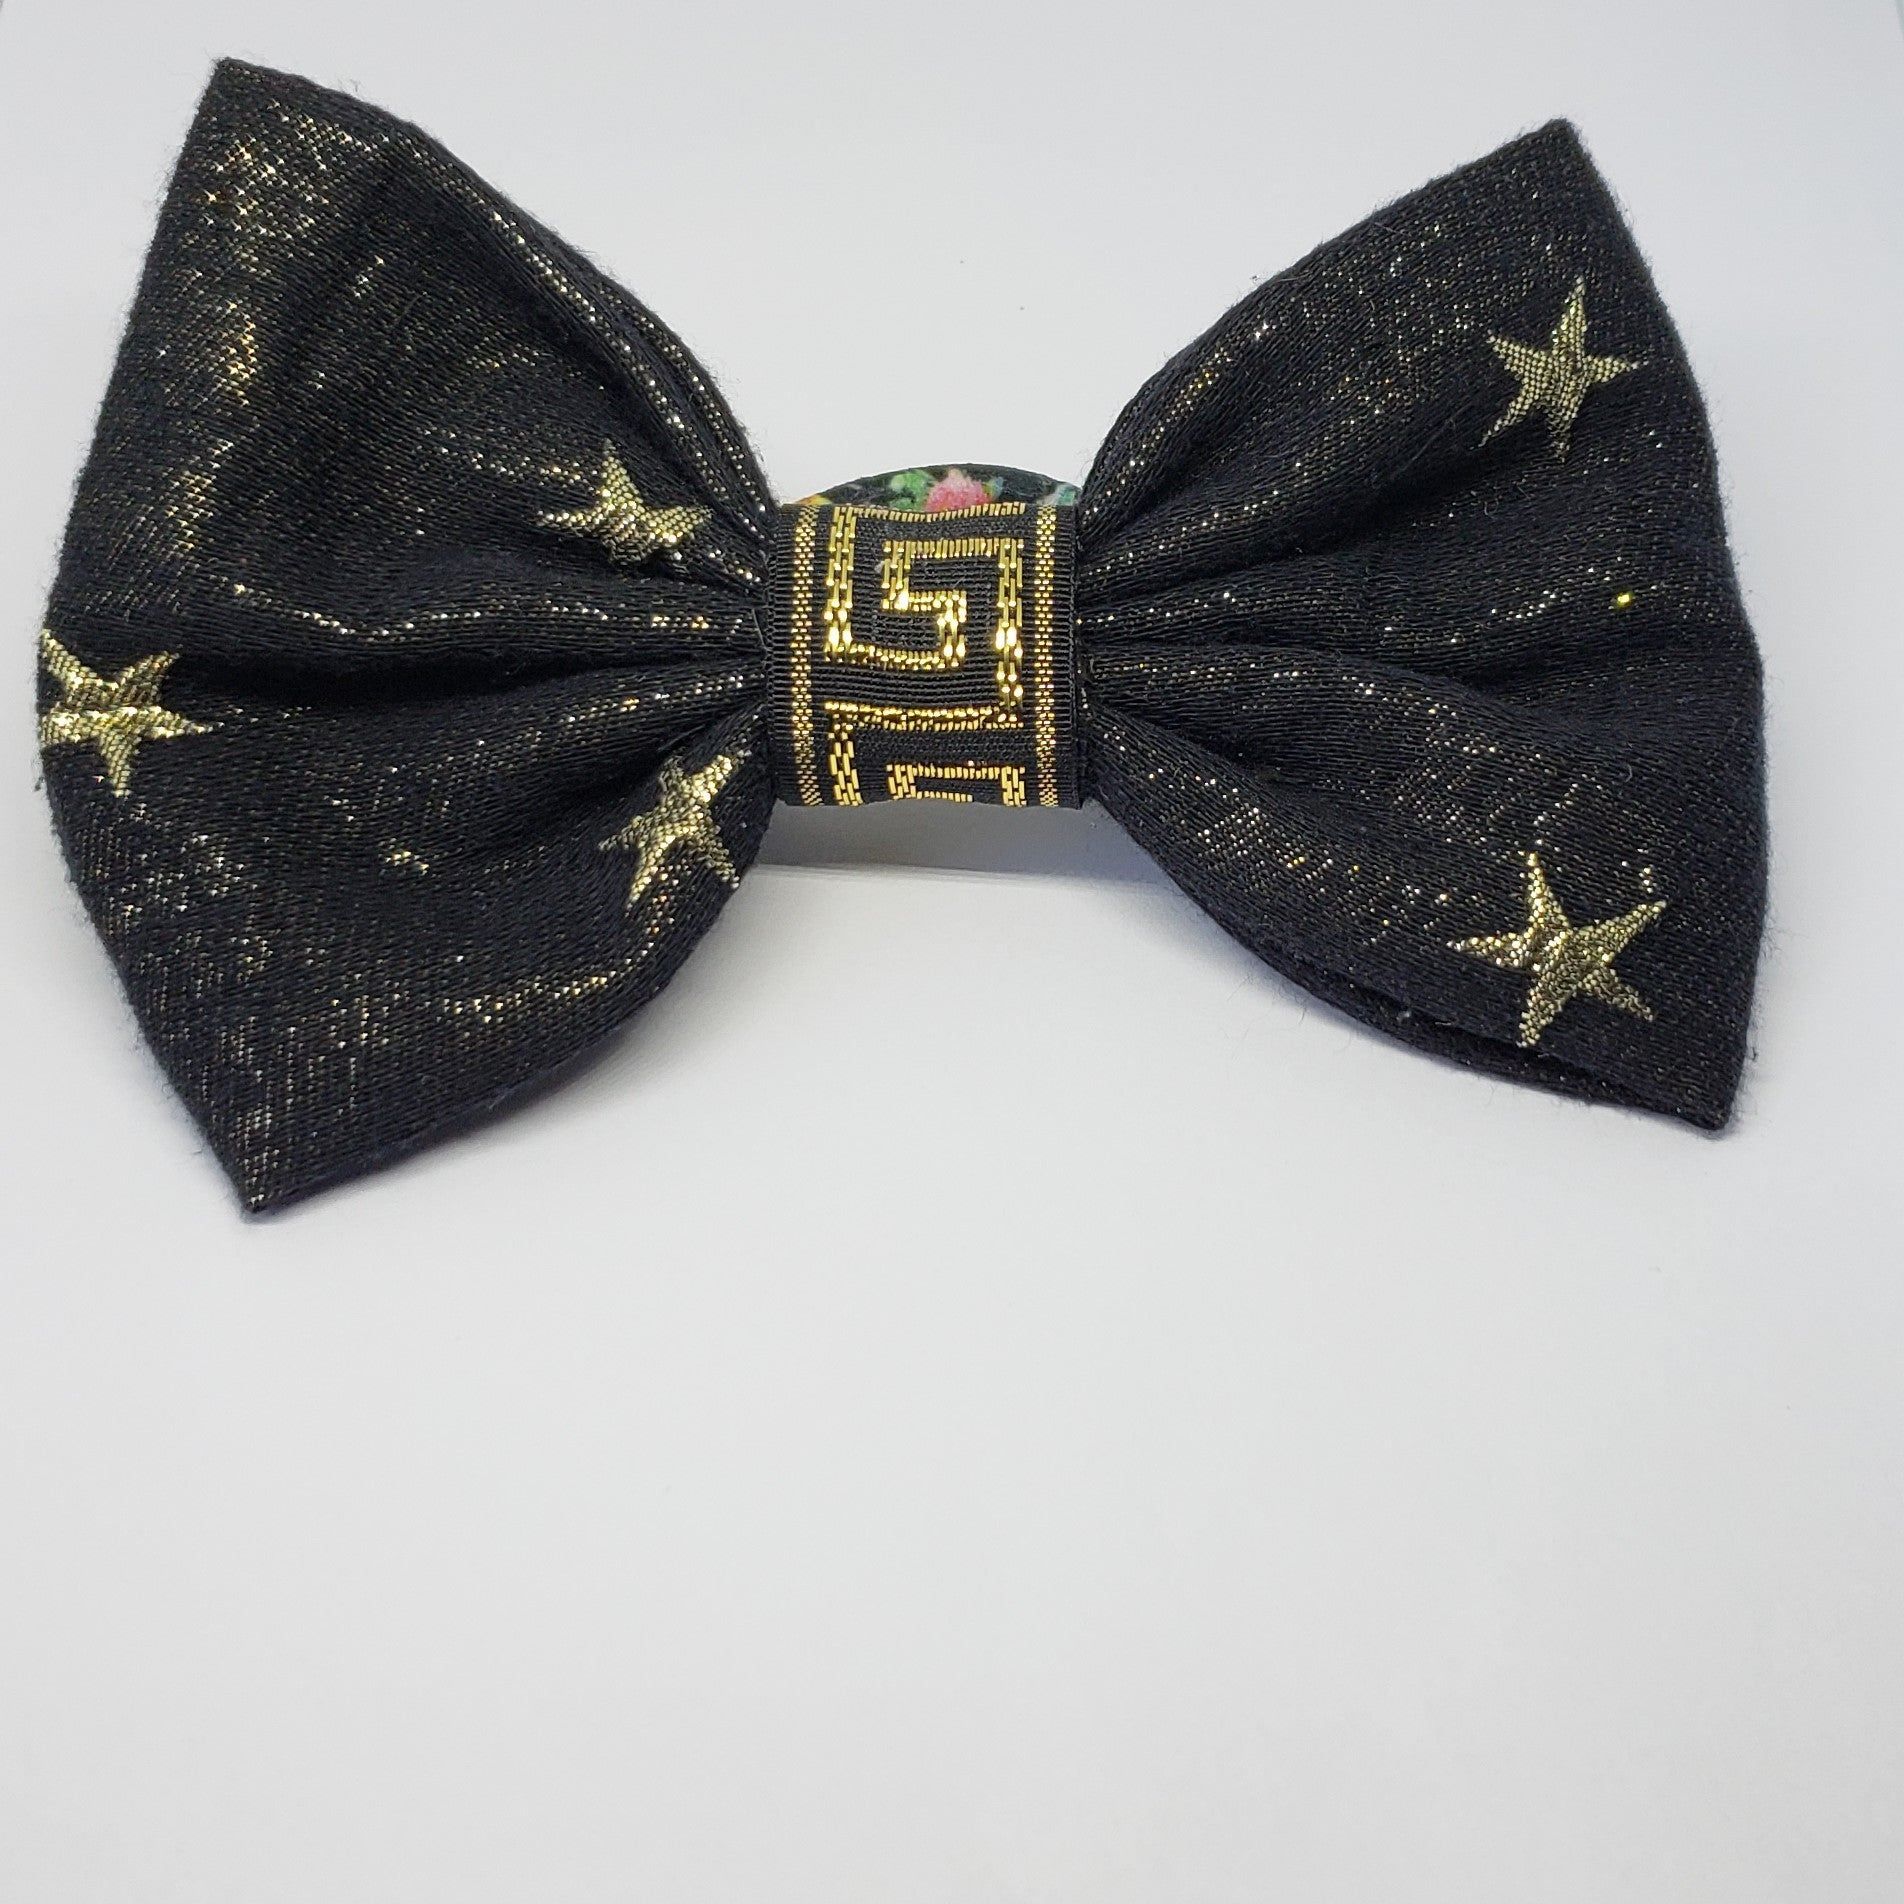 Mia Under the Stars Designer Inspired Black & Gold Multi Floral Bow - Houzz of DVA Boutique